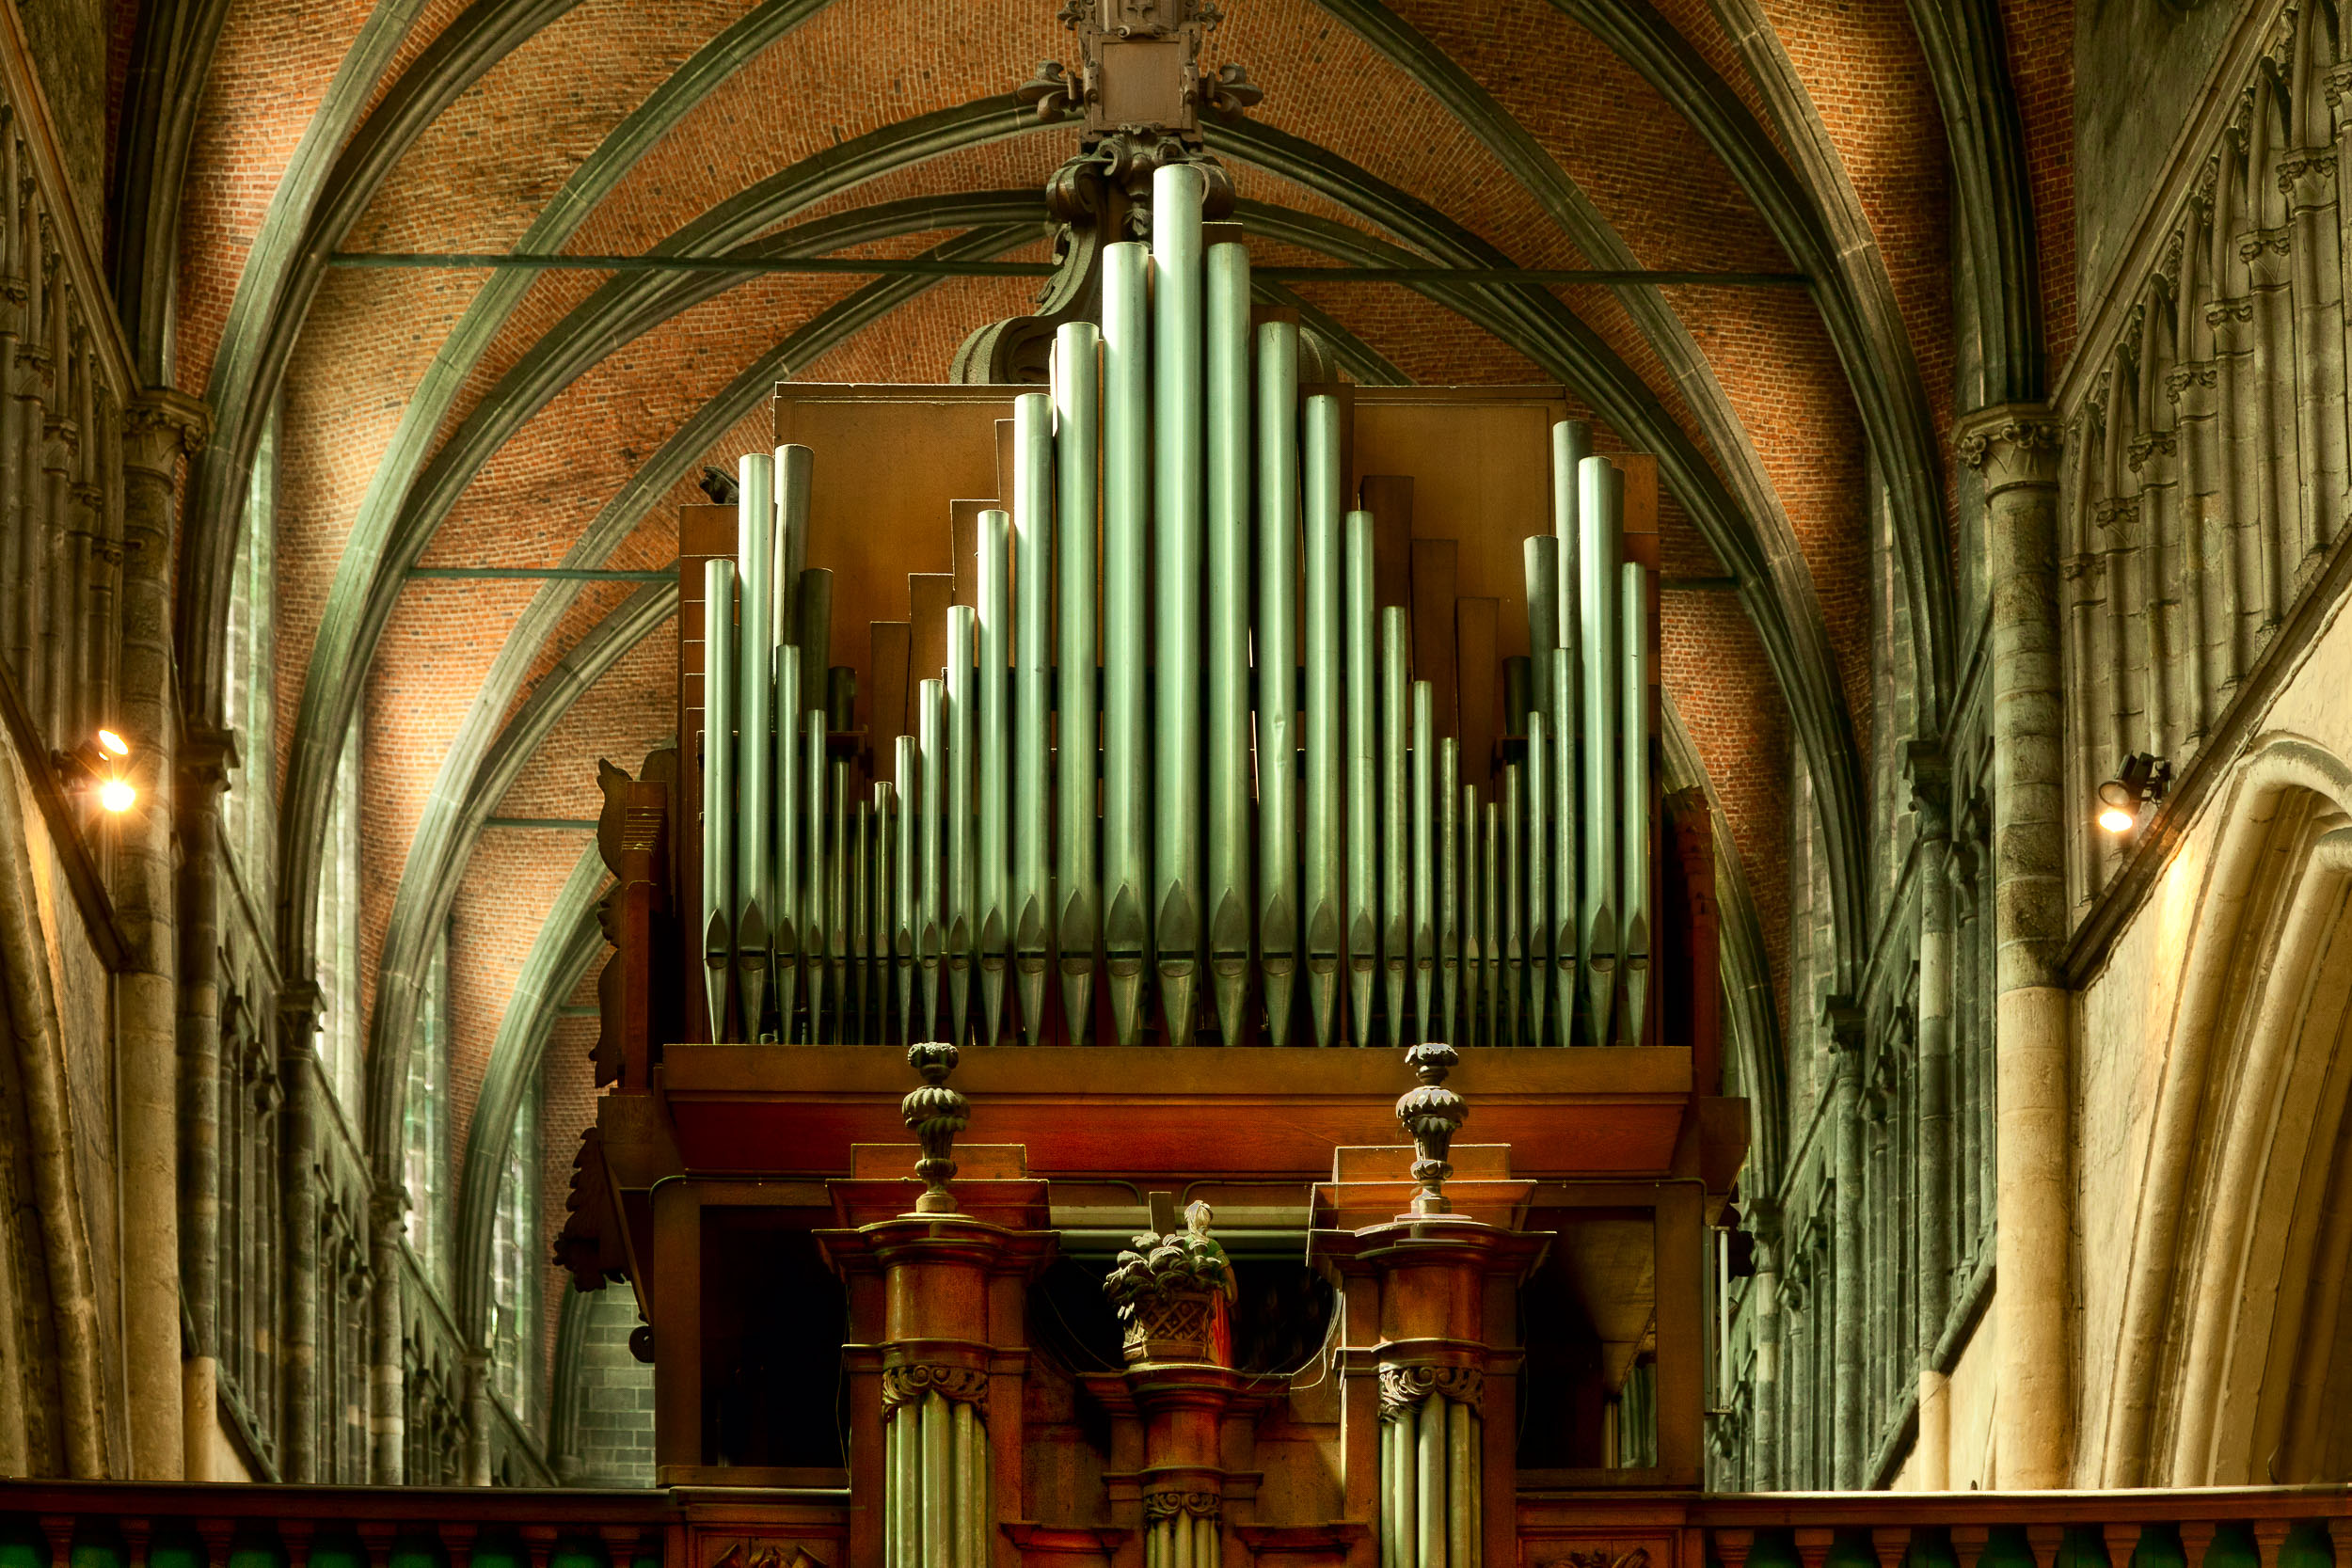 A spectacularly beautiful    church organ    in the    Church Of Our Lady    in    Bruges, Belgium   .